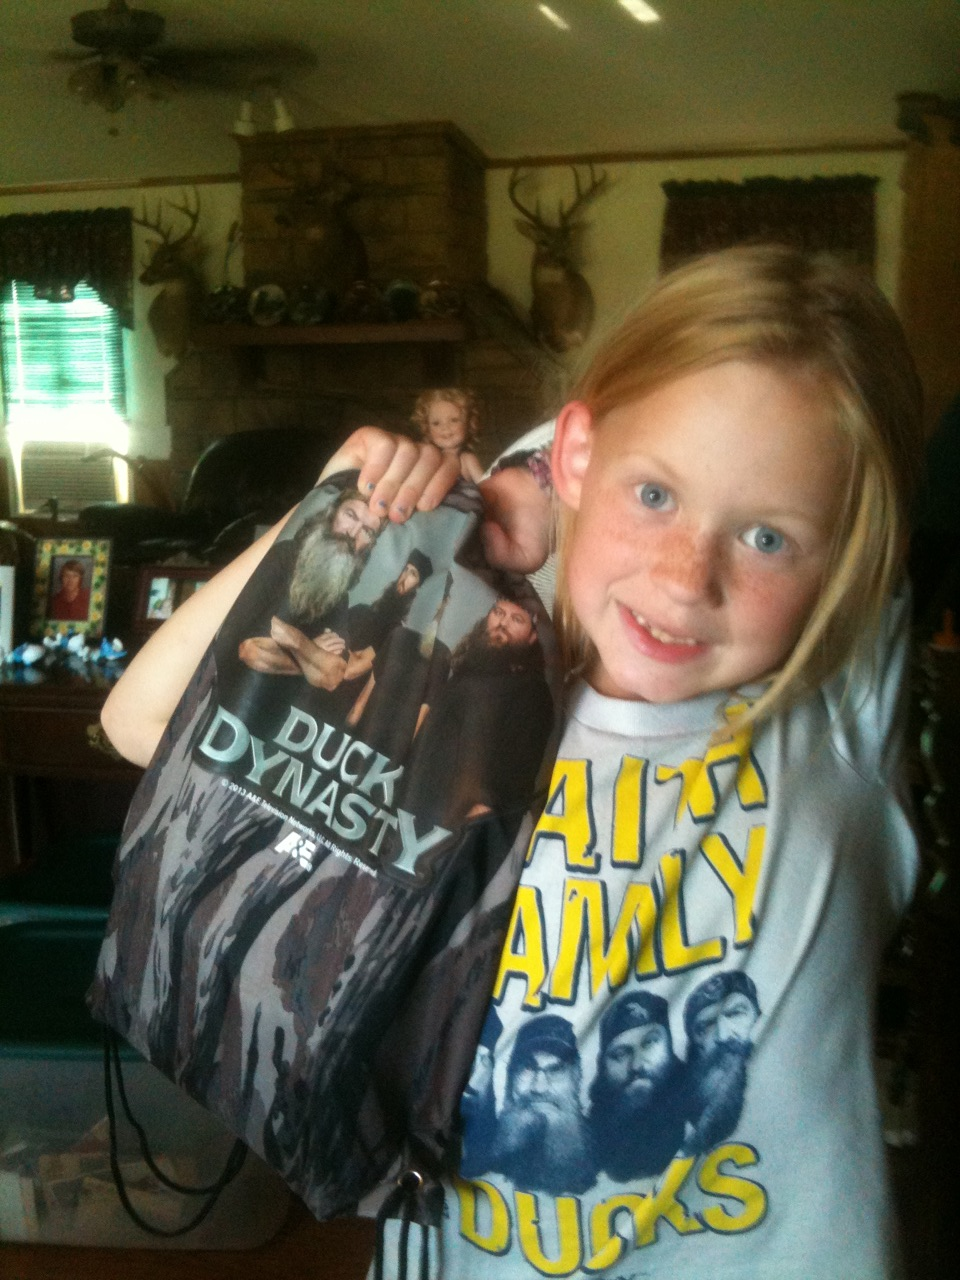 Faith is proud of her new Duck Dynasty T-shirt and backpack.